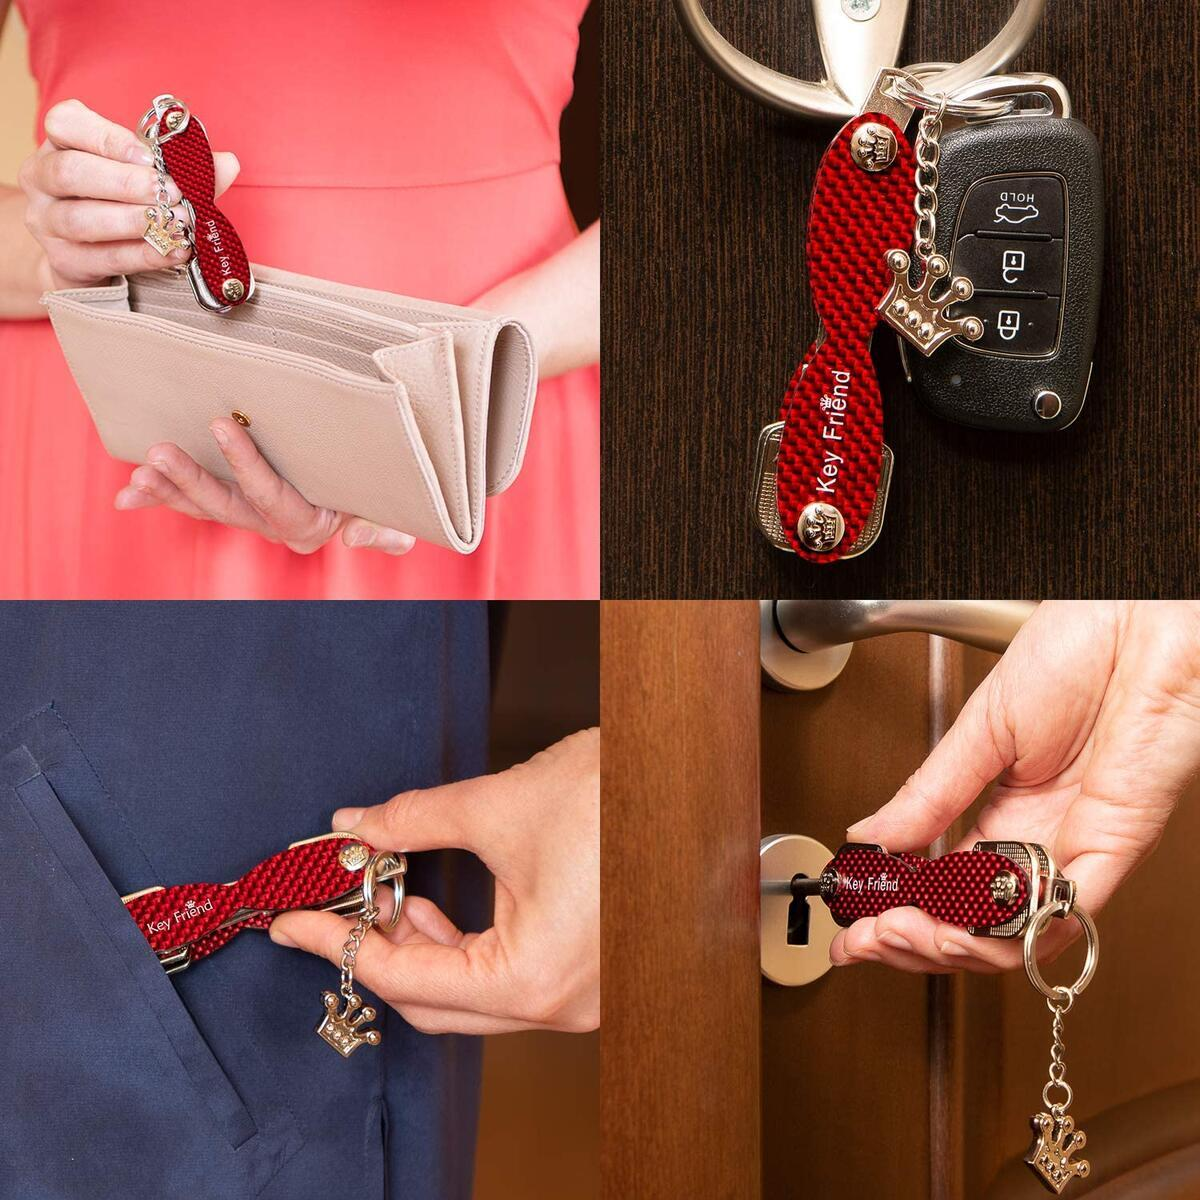 KeyFriend Smart Key Organizer for Women